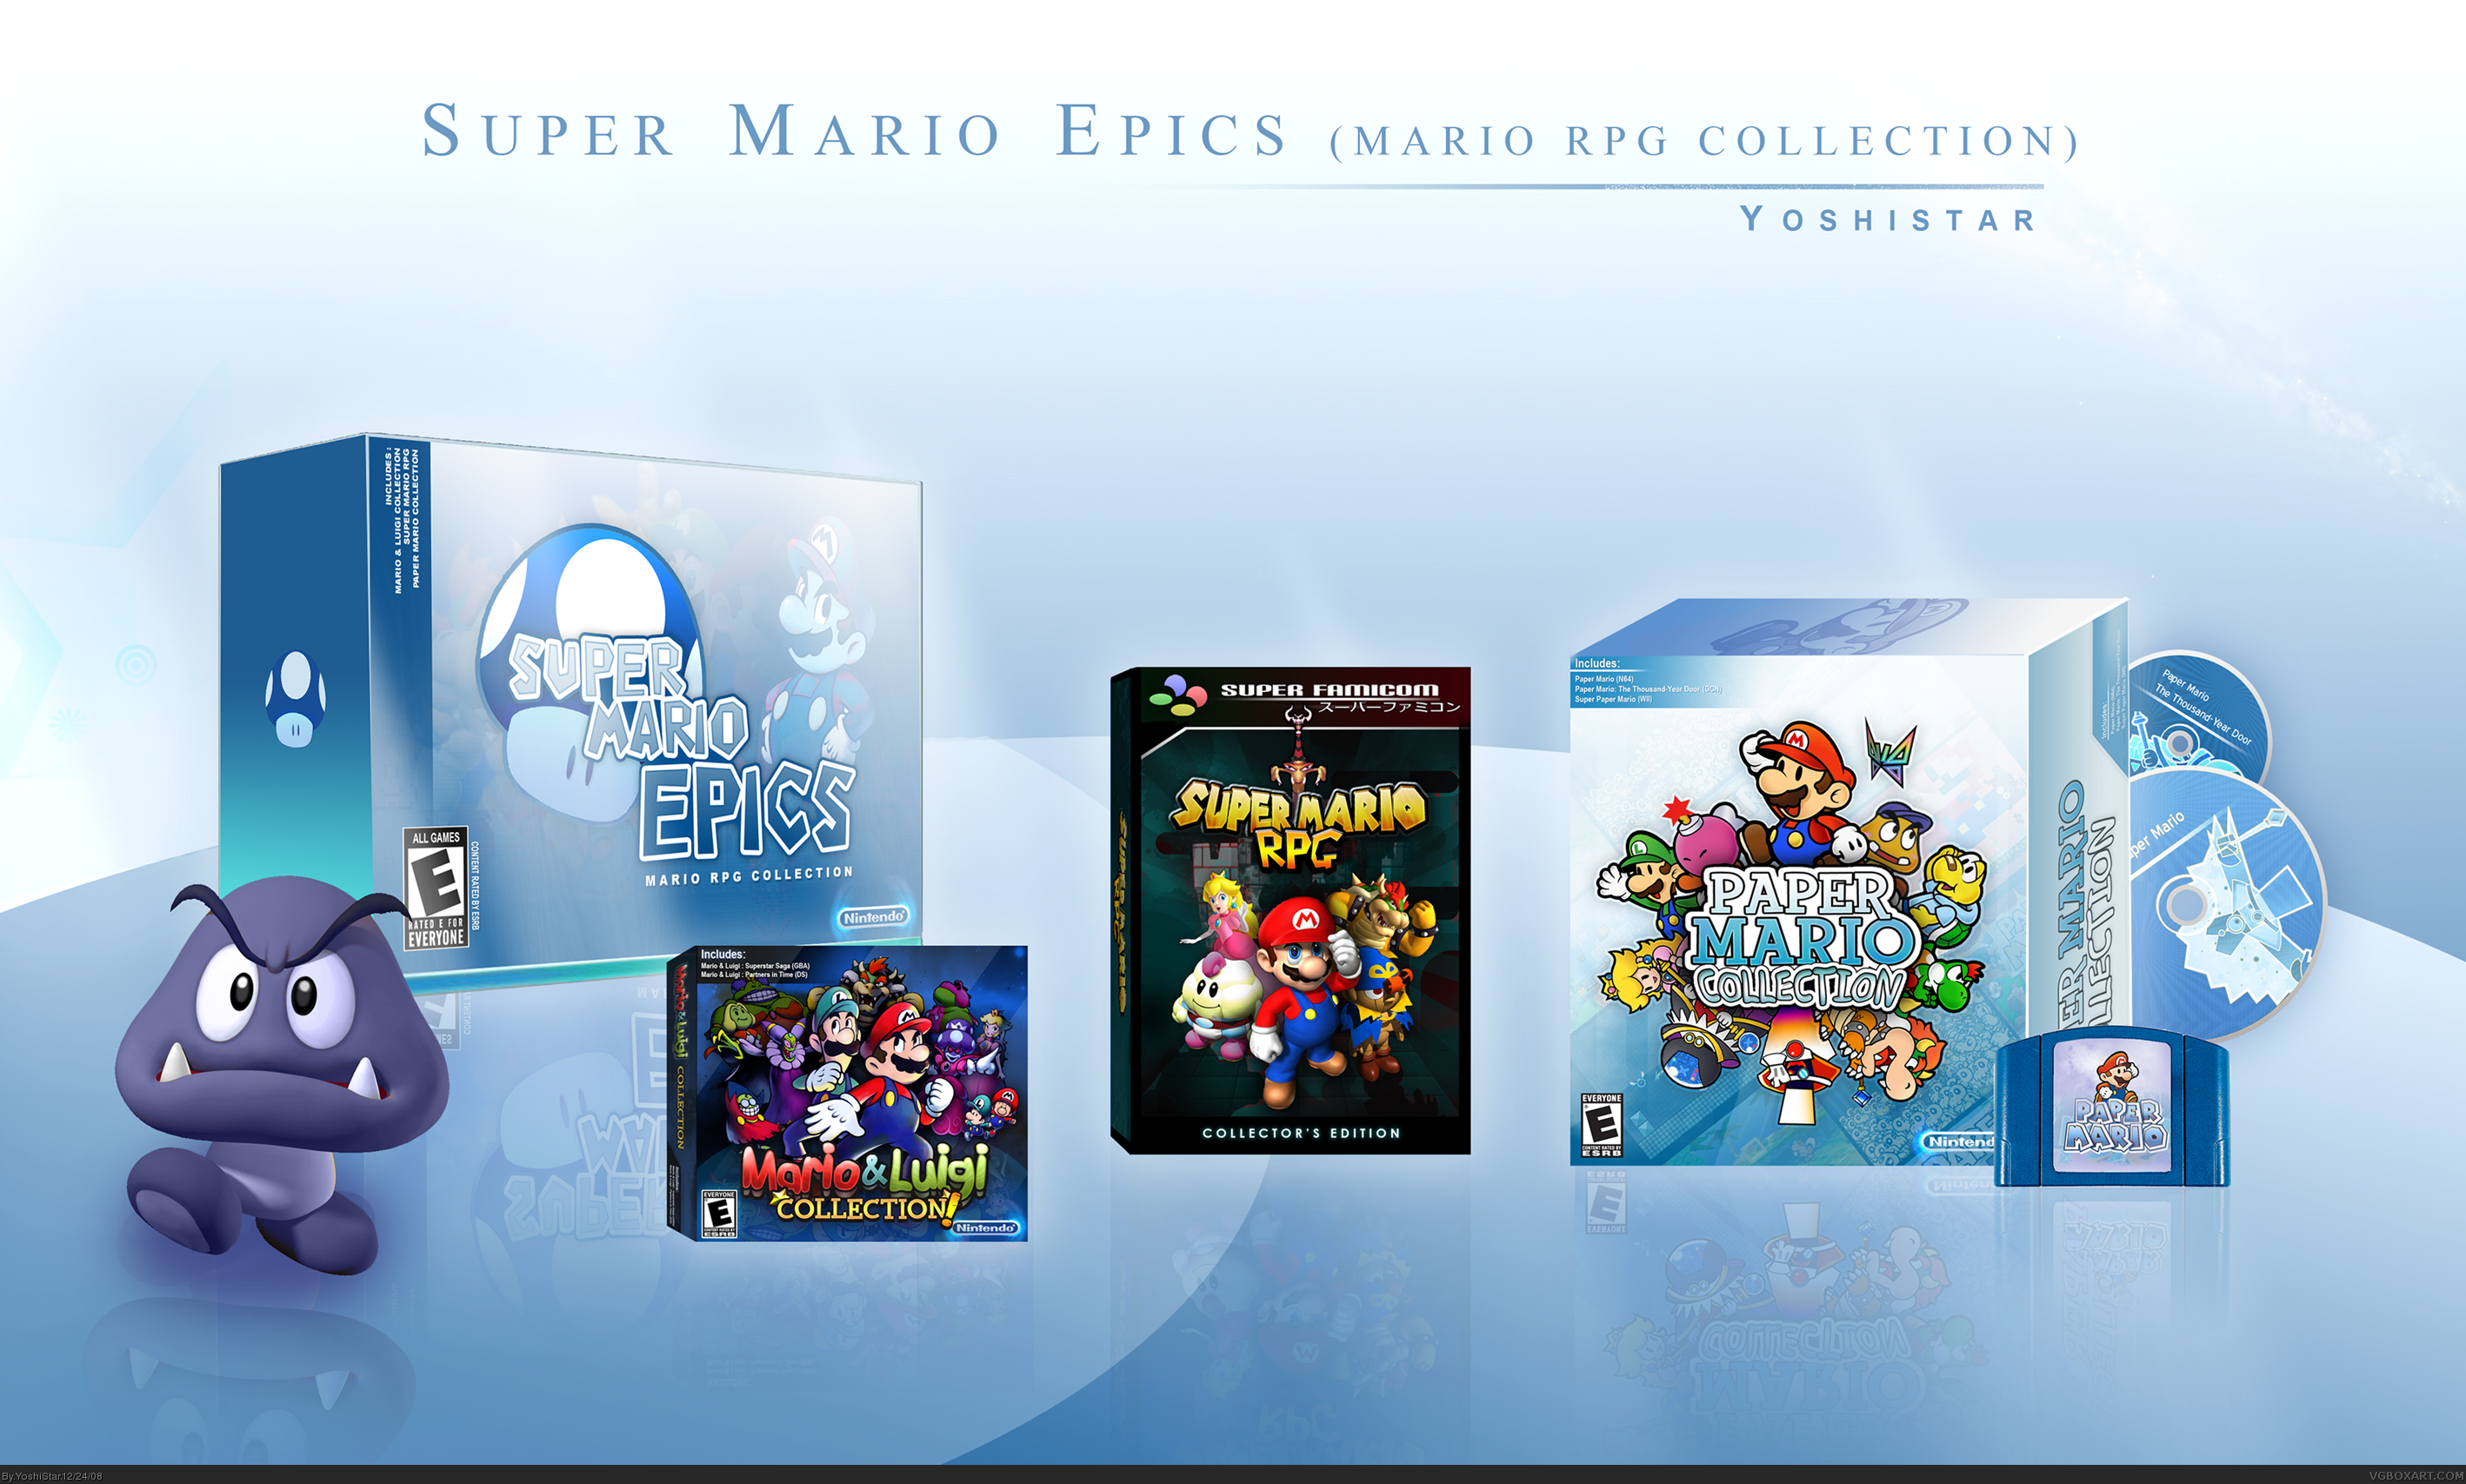 Super Mario Epics box cover